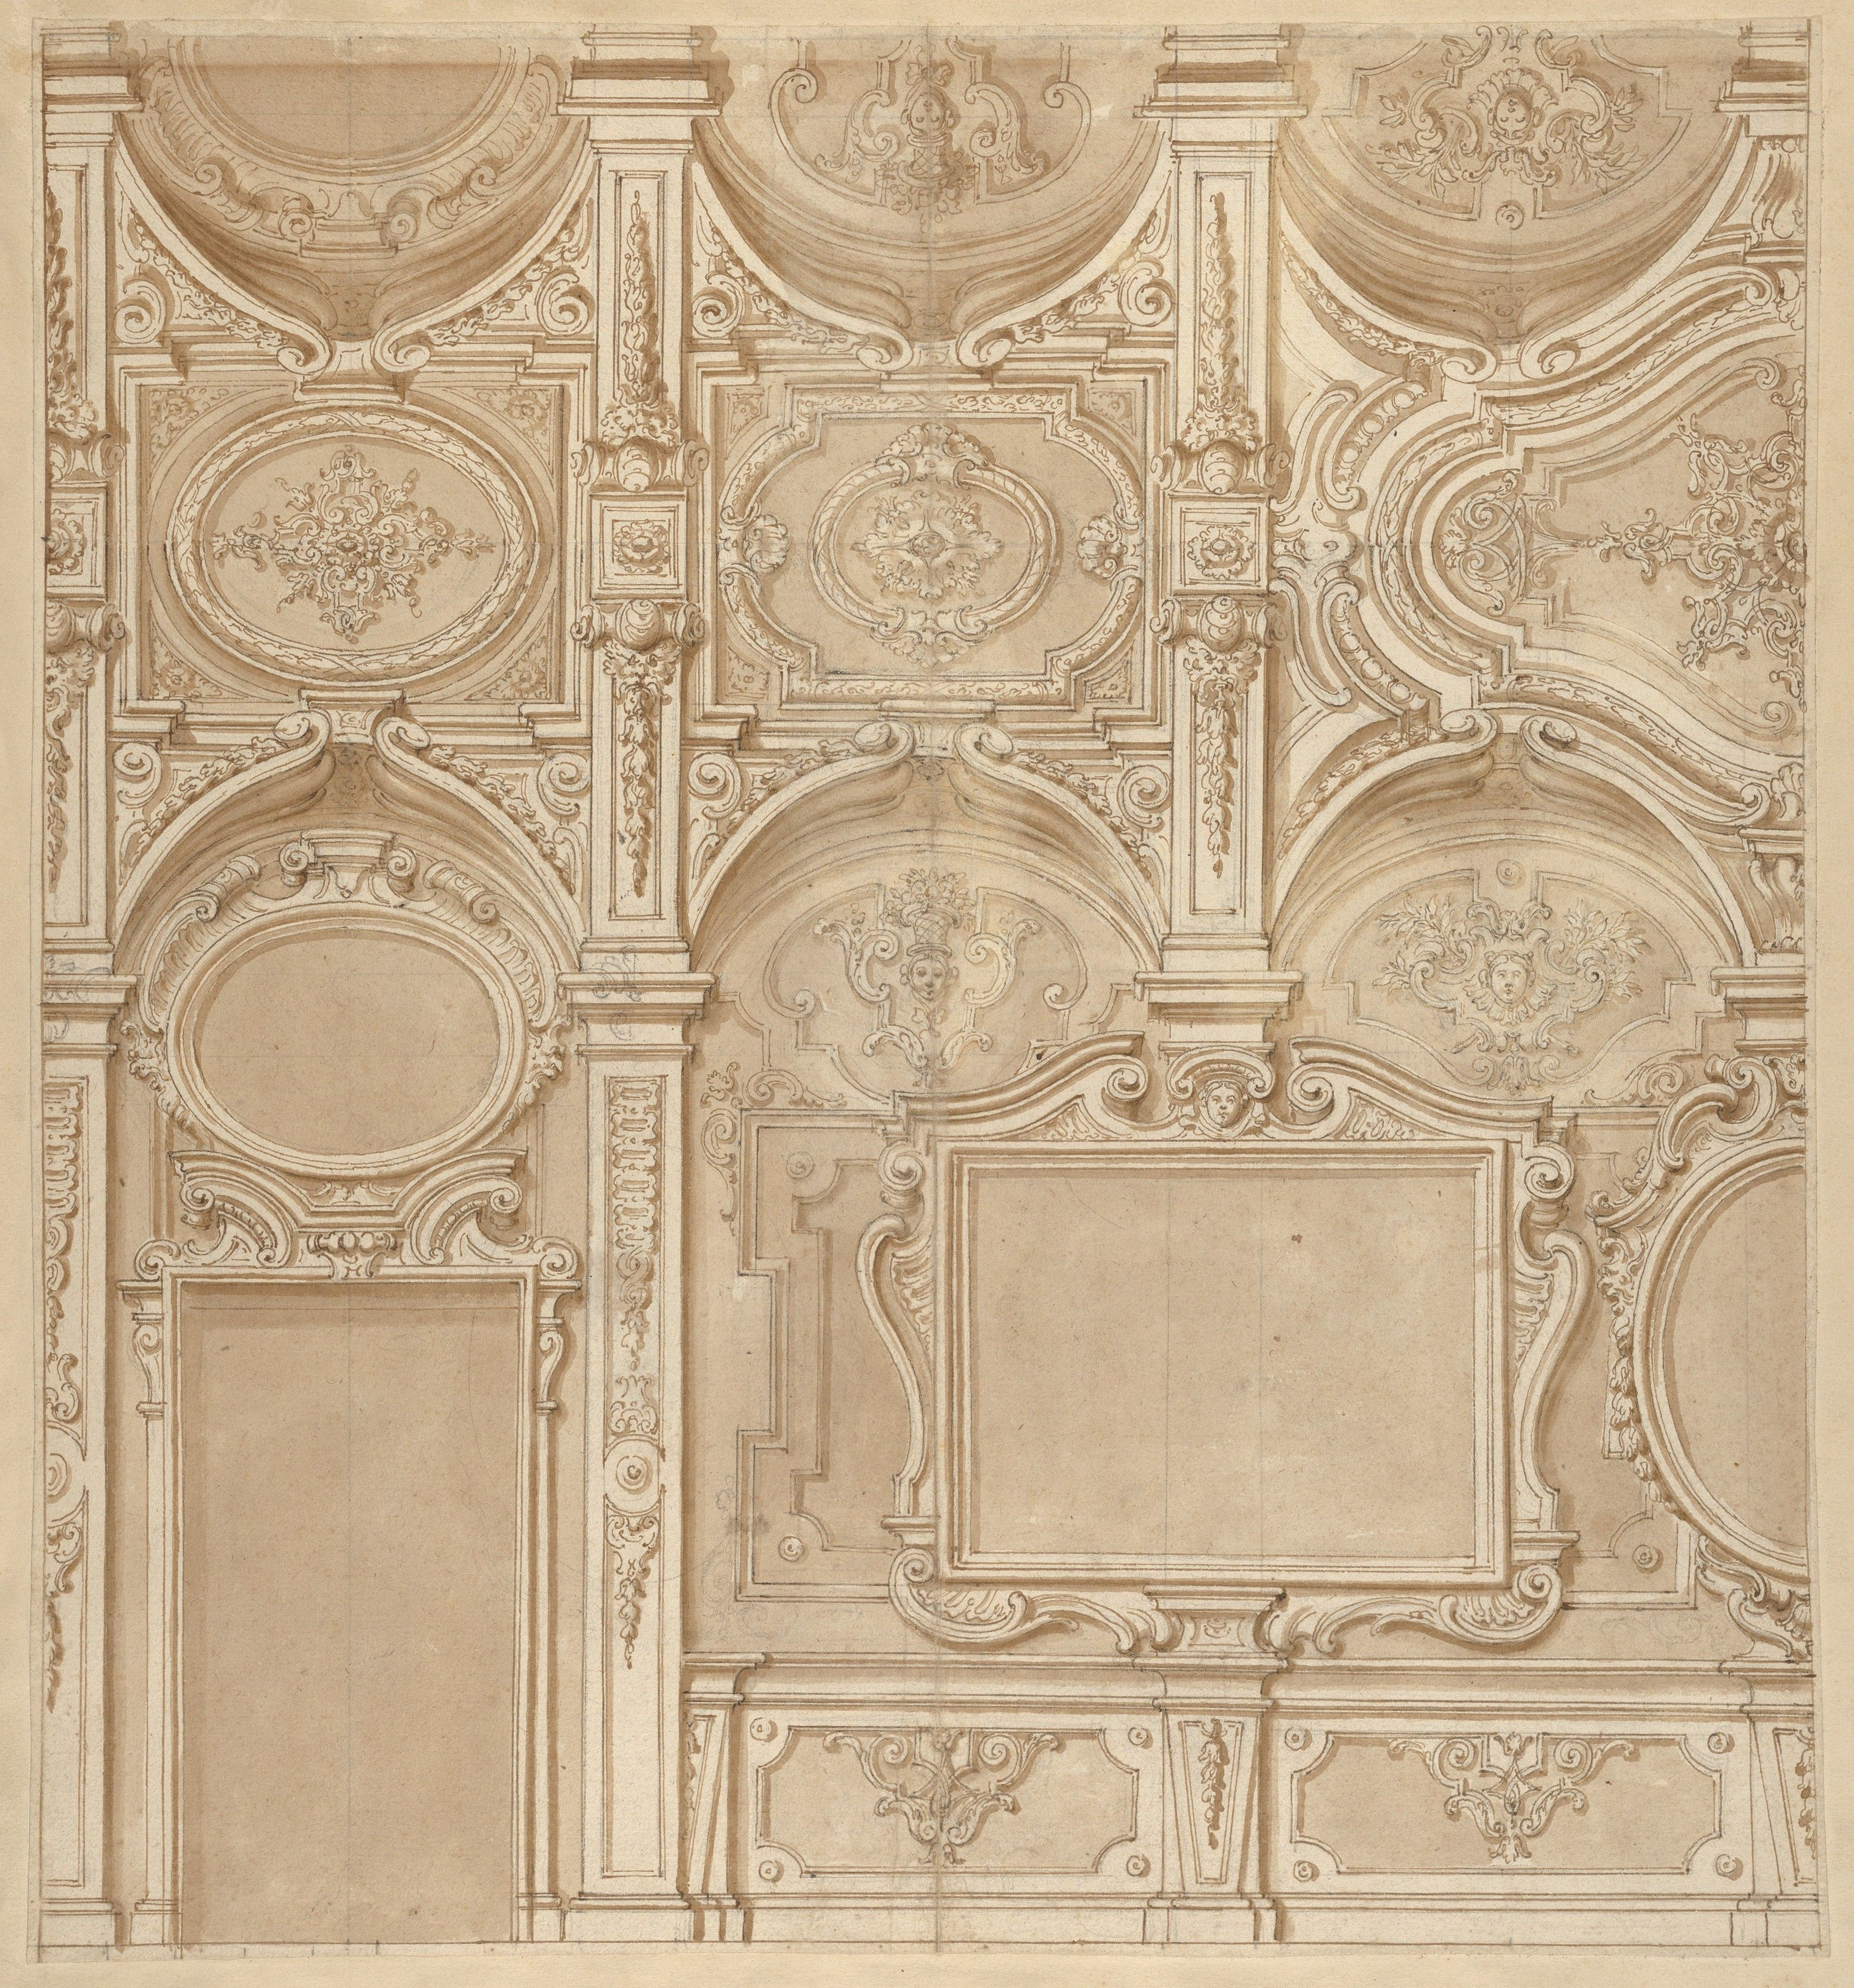 Anonymous, Italian, 18th century | Design for a Wall and Ceiling with Frames and Decorations in Stucco | The Metropolitan Museum of Art